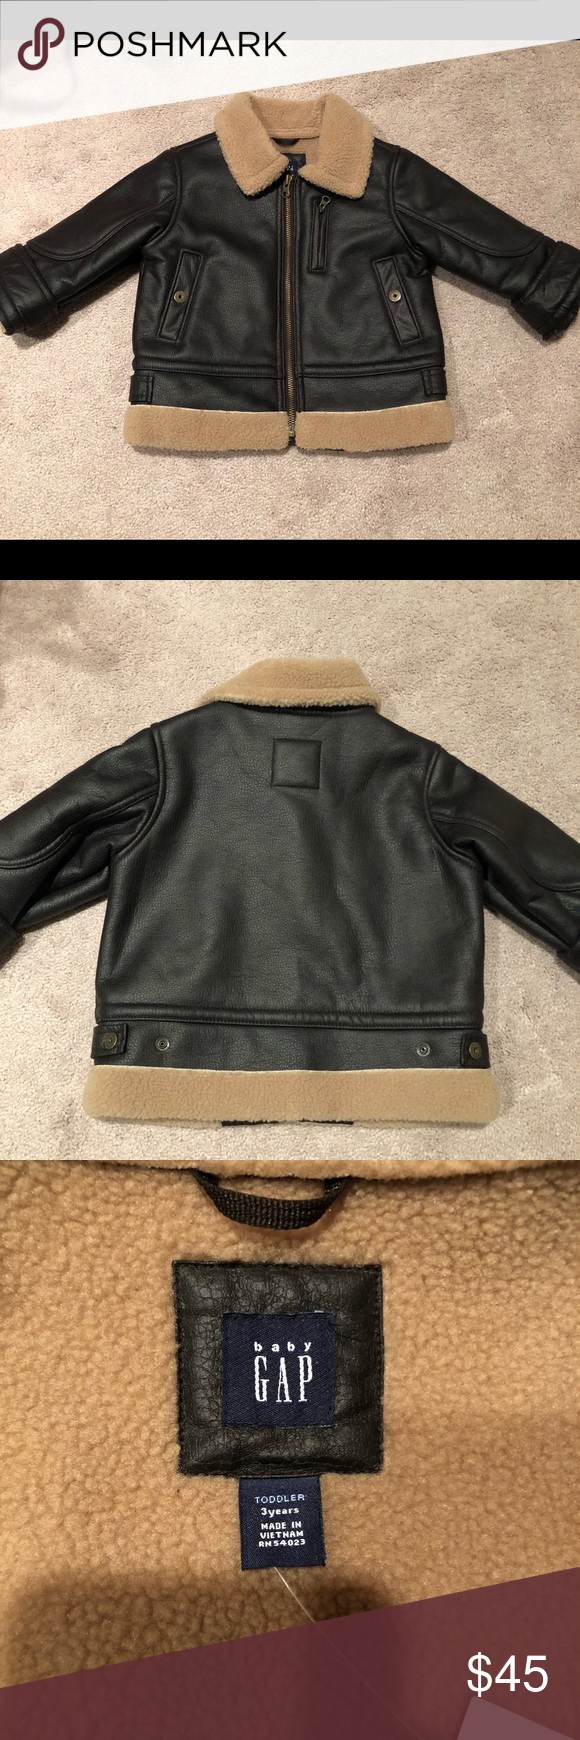 Baby Gap Leather Jacket Nwt Nwt Baby Gap Faux Dark Brown Leather Bomber Insulated Jacket Size 3t Button And Zip Pockets With C Leather Jacket Jackets Baby Gap [ 1740 x 580 Pixel ]